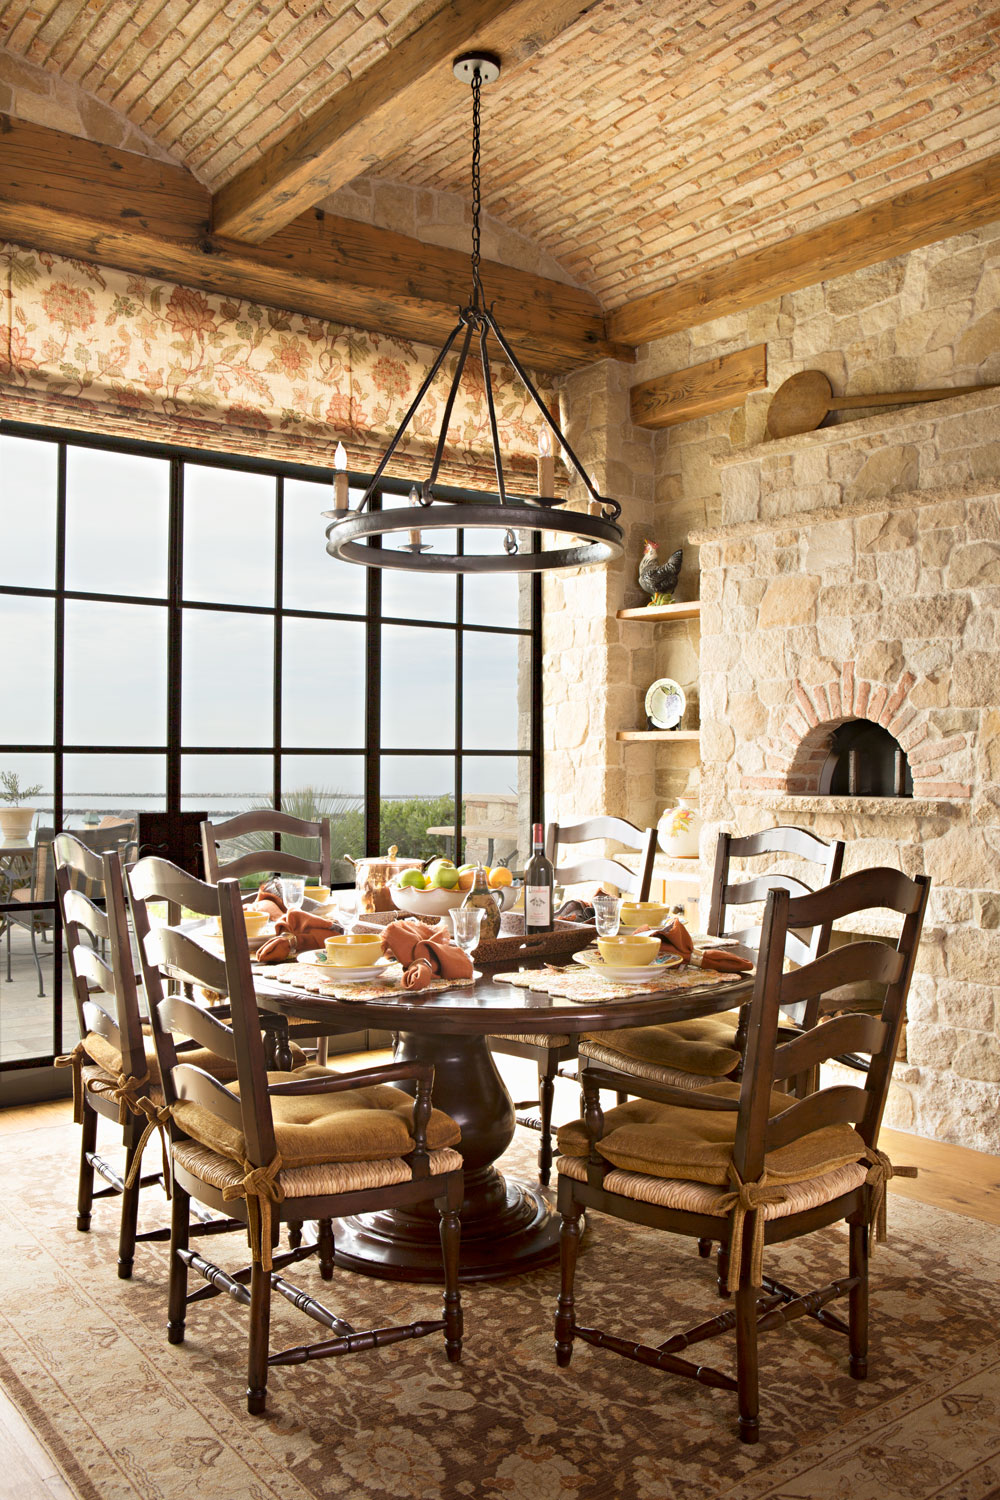 Tuscan-Mediterranean-Breakfast-Room-Stone-Ways-Barrel-Vaulted-Ceiling-corbin-reeves.jpg